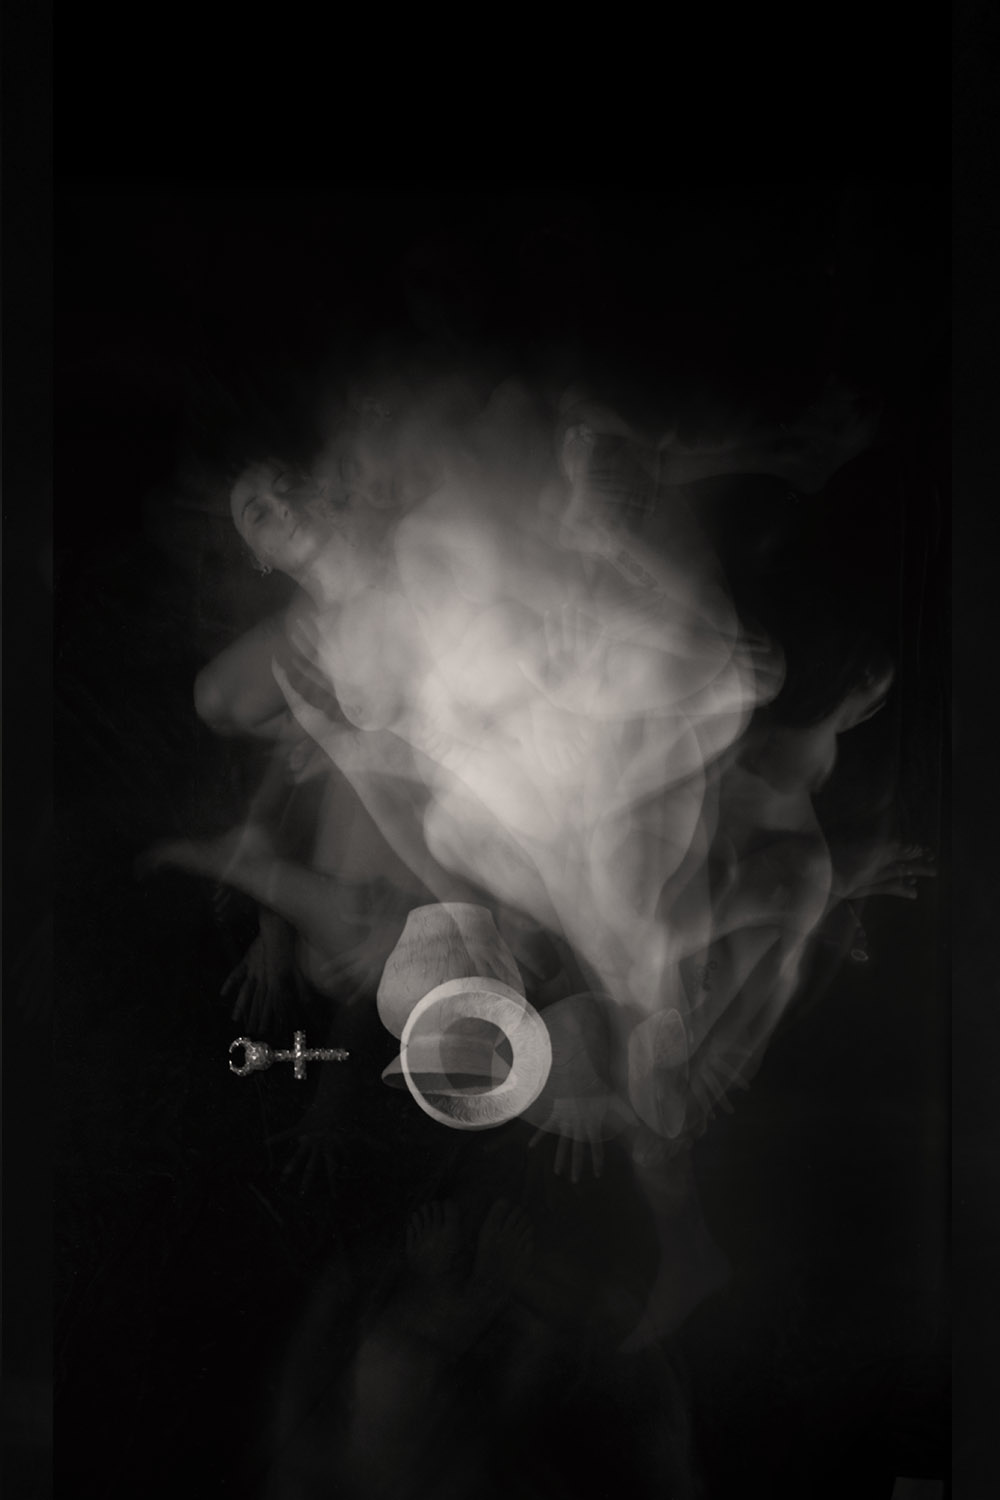 Carla Janse van Rensburg Untitled (10 minute exposure of Pain Transference Vase Consecration Ritual) 2018 digital photograph archival ink on Hahnemuhle, 1of20 35.5 x 24.2 cm